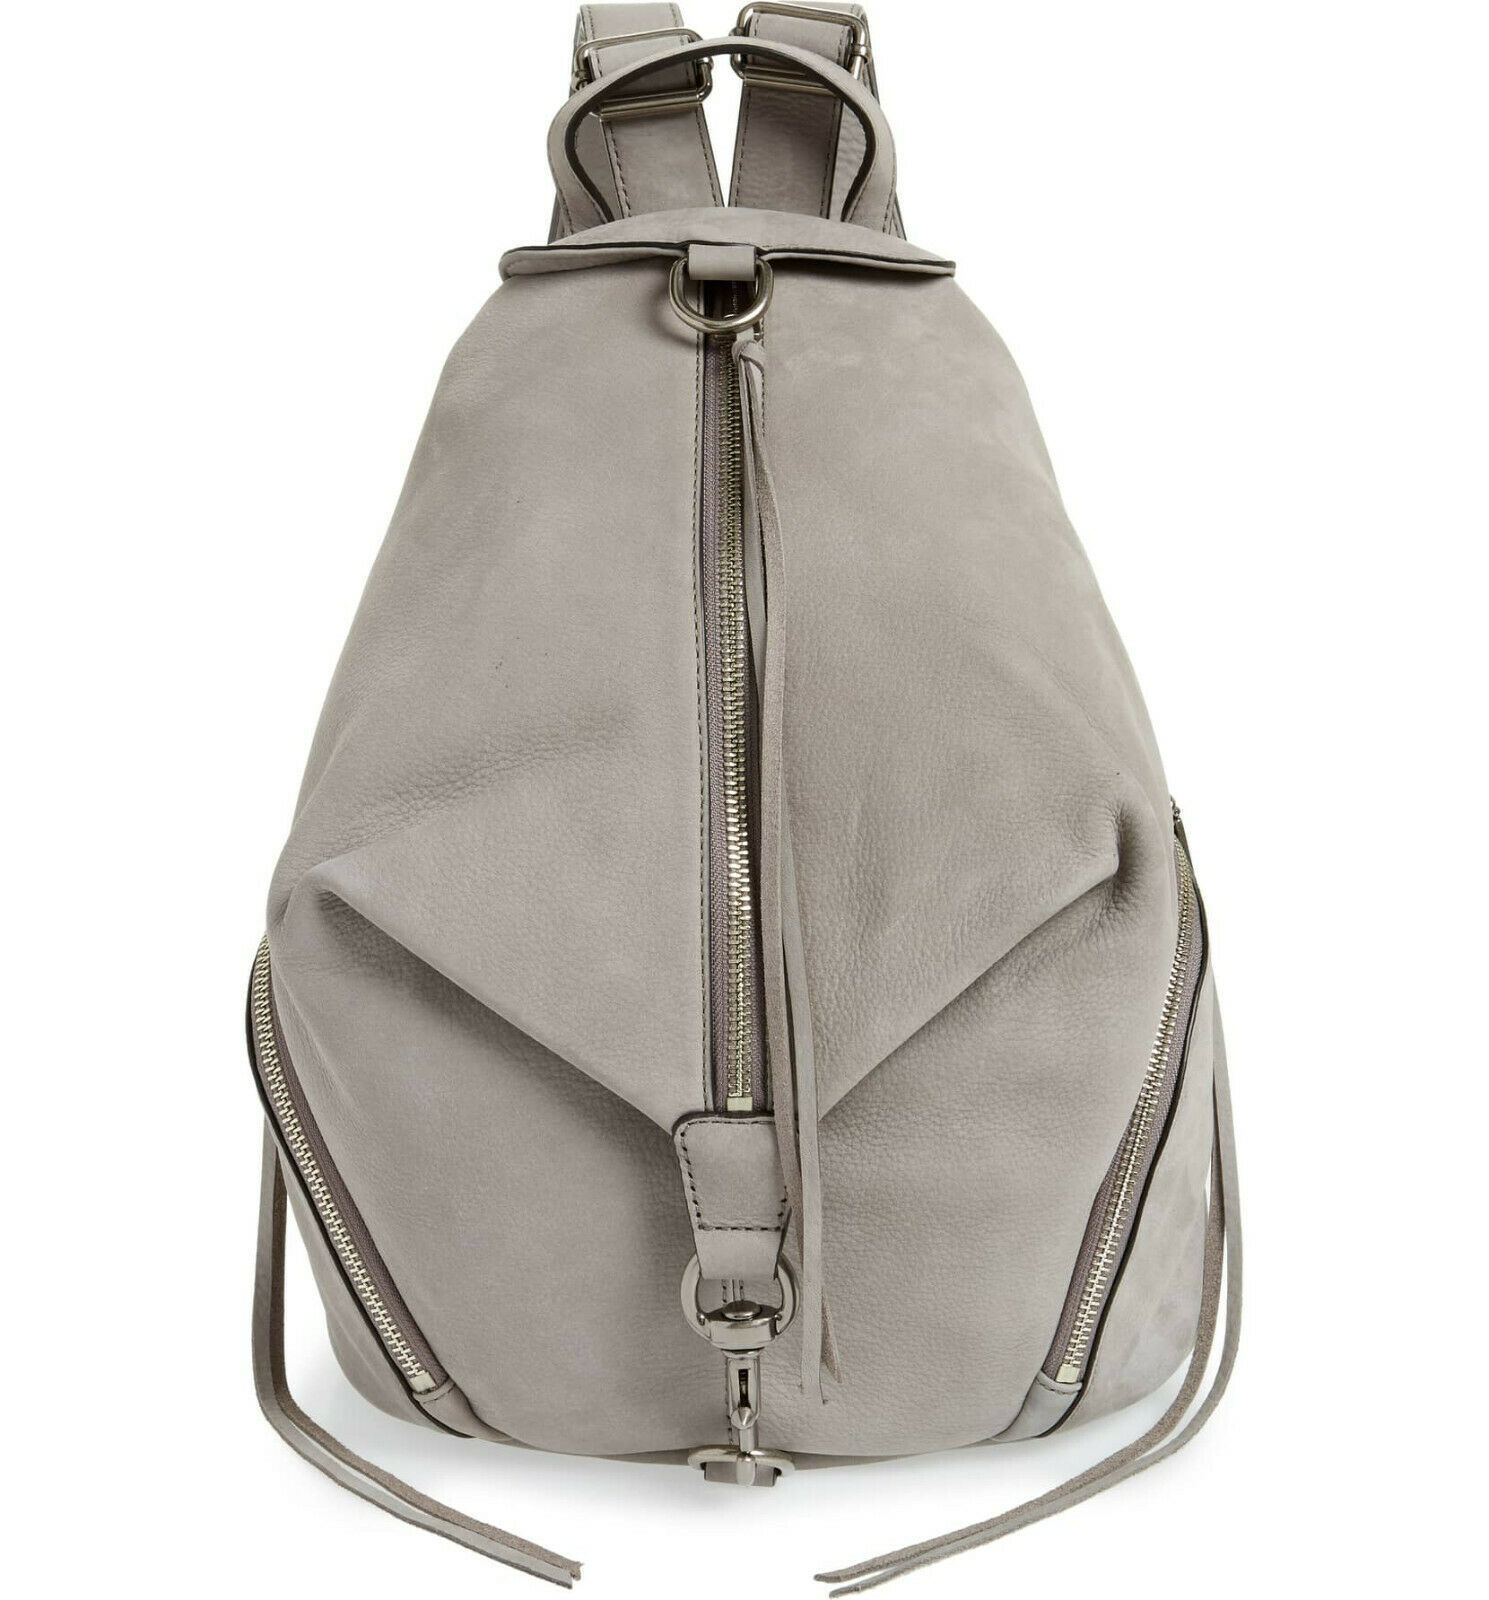 Primary image for NWT REBECCA MINKOFF Lrg Julian Full Size NUBUCK Leather Backpack GREY AUTHENTIC